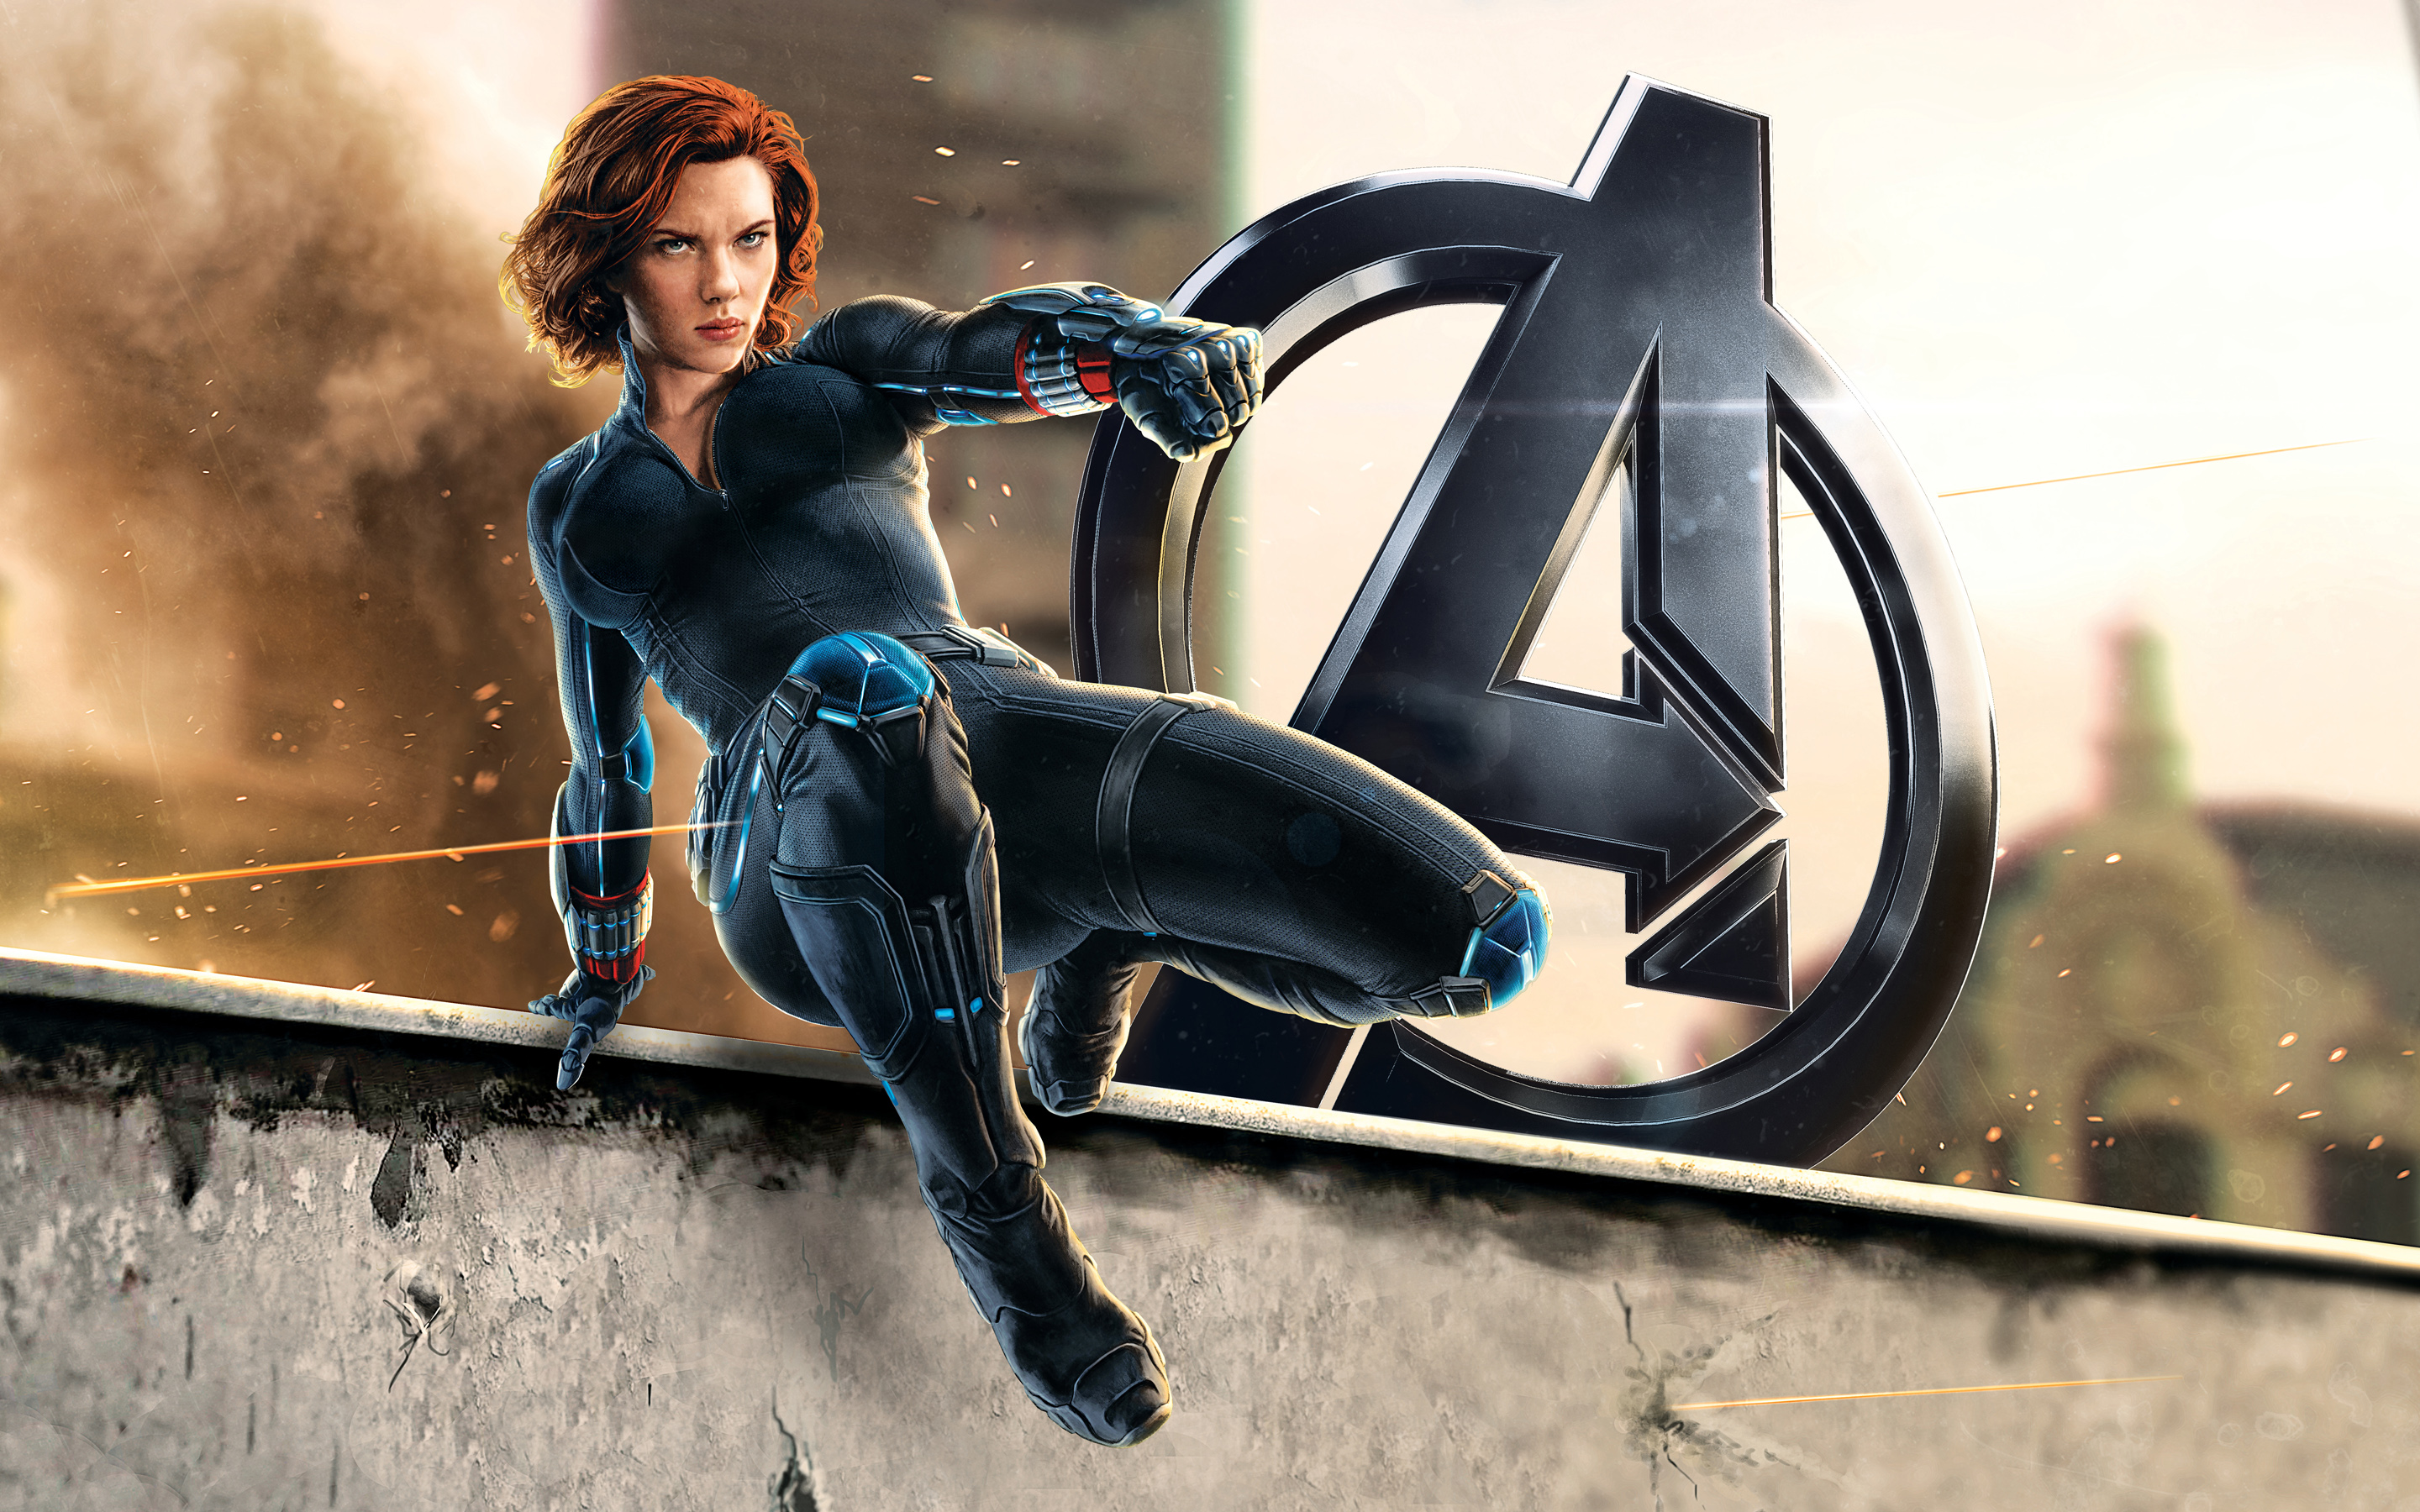 Natasha Romanoff Black Widow9231211252 - Natasha Romanoff Black Widow - Widow, Romanoff, Natasha, Cosplay, Black